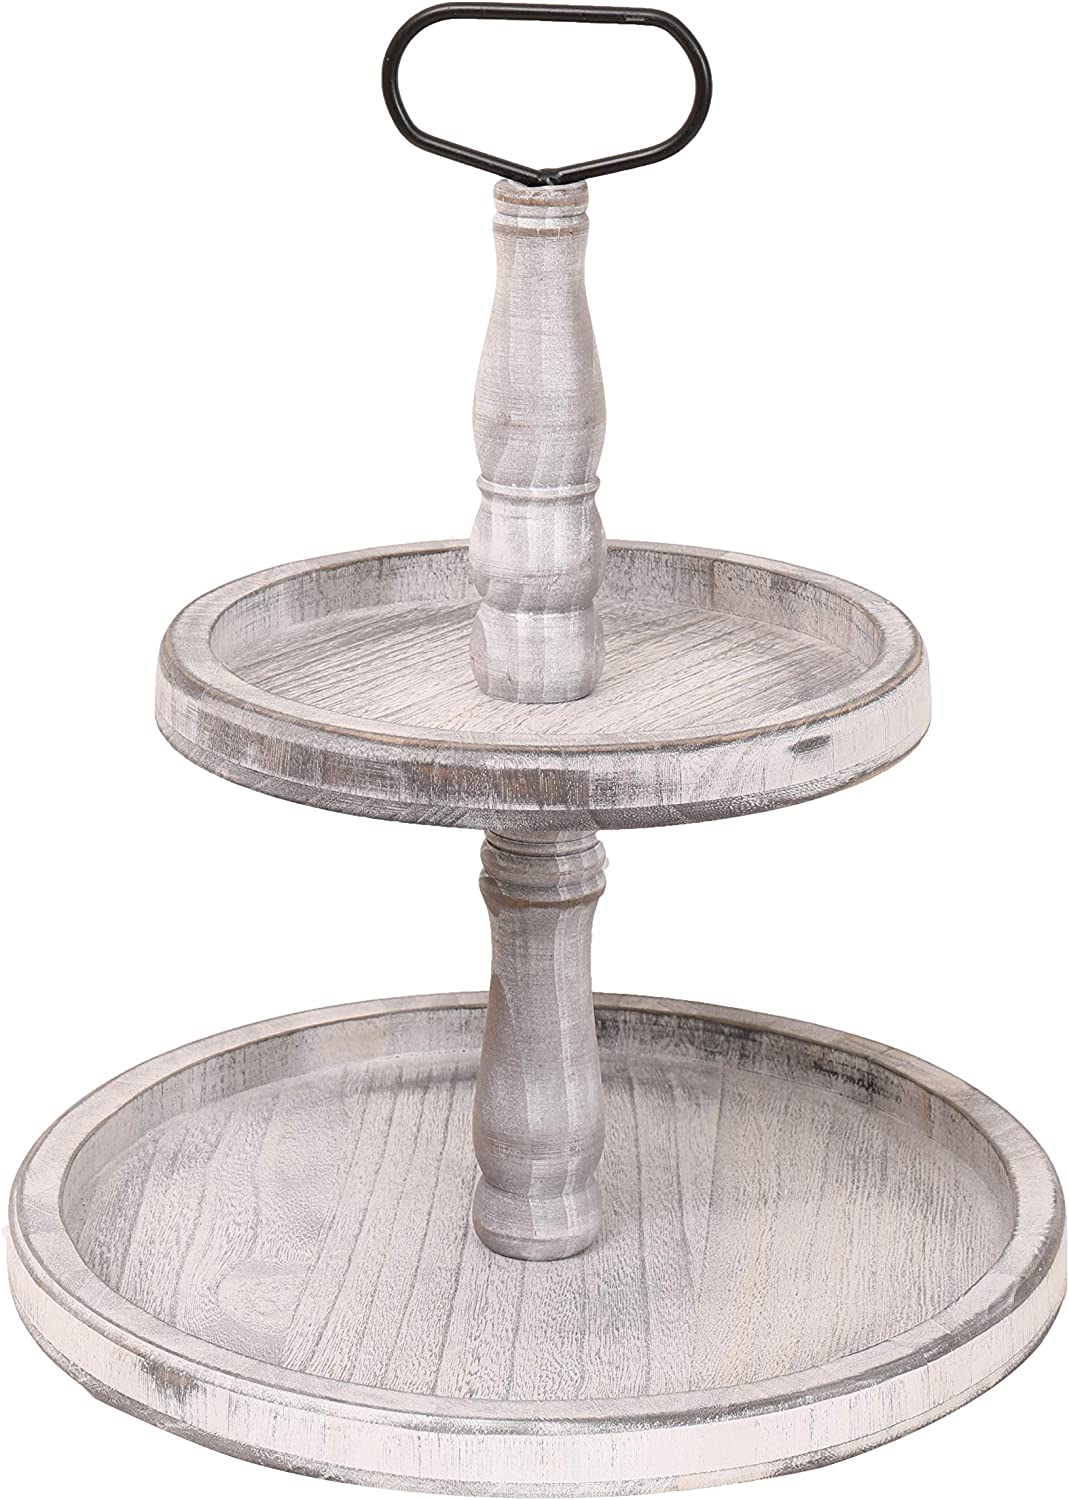 Vintage Wood Two Tiered Tray with Round Metal Handle,Easy to Assemble 2 Tier Home Decor for Tiered Food Presentation Serving Tray,Cupcake Tray (White)